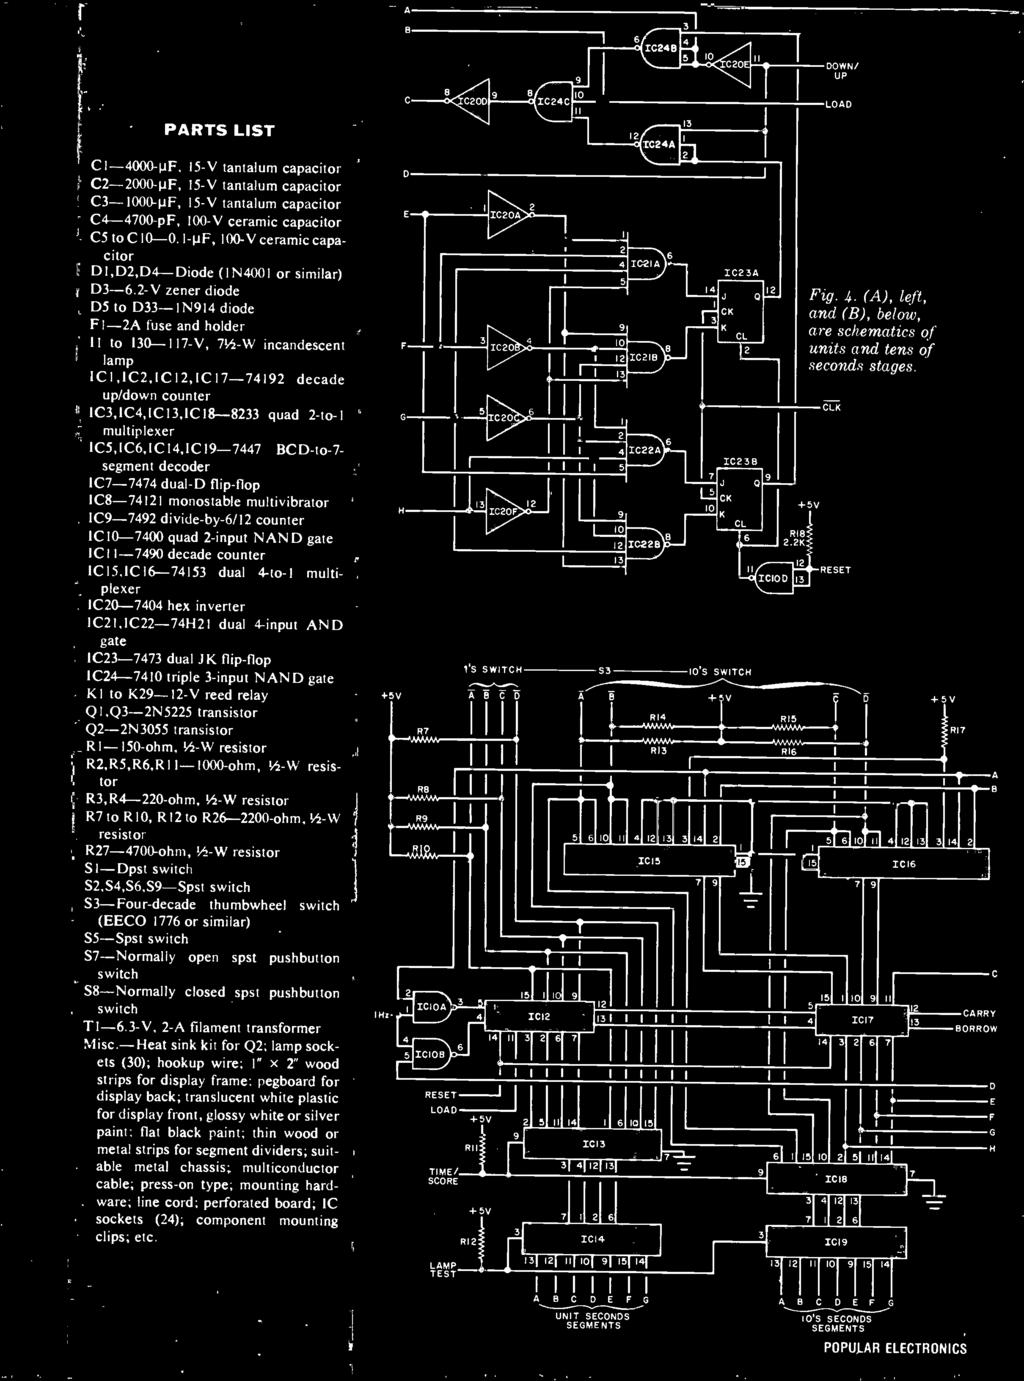 Cb Communication Range Pdf Circuit Diagram Additionally Rf Transmitter On Untested Ic9 7492 Divide By 6 12 Counter Ic10 7400 Quad 2